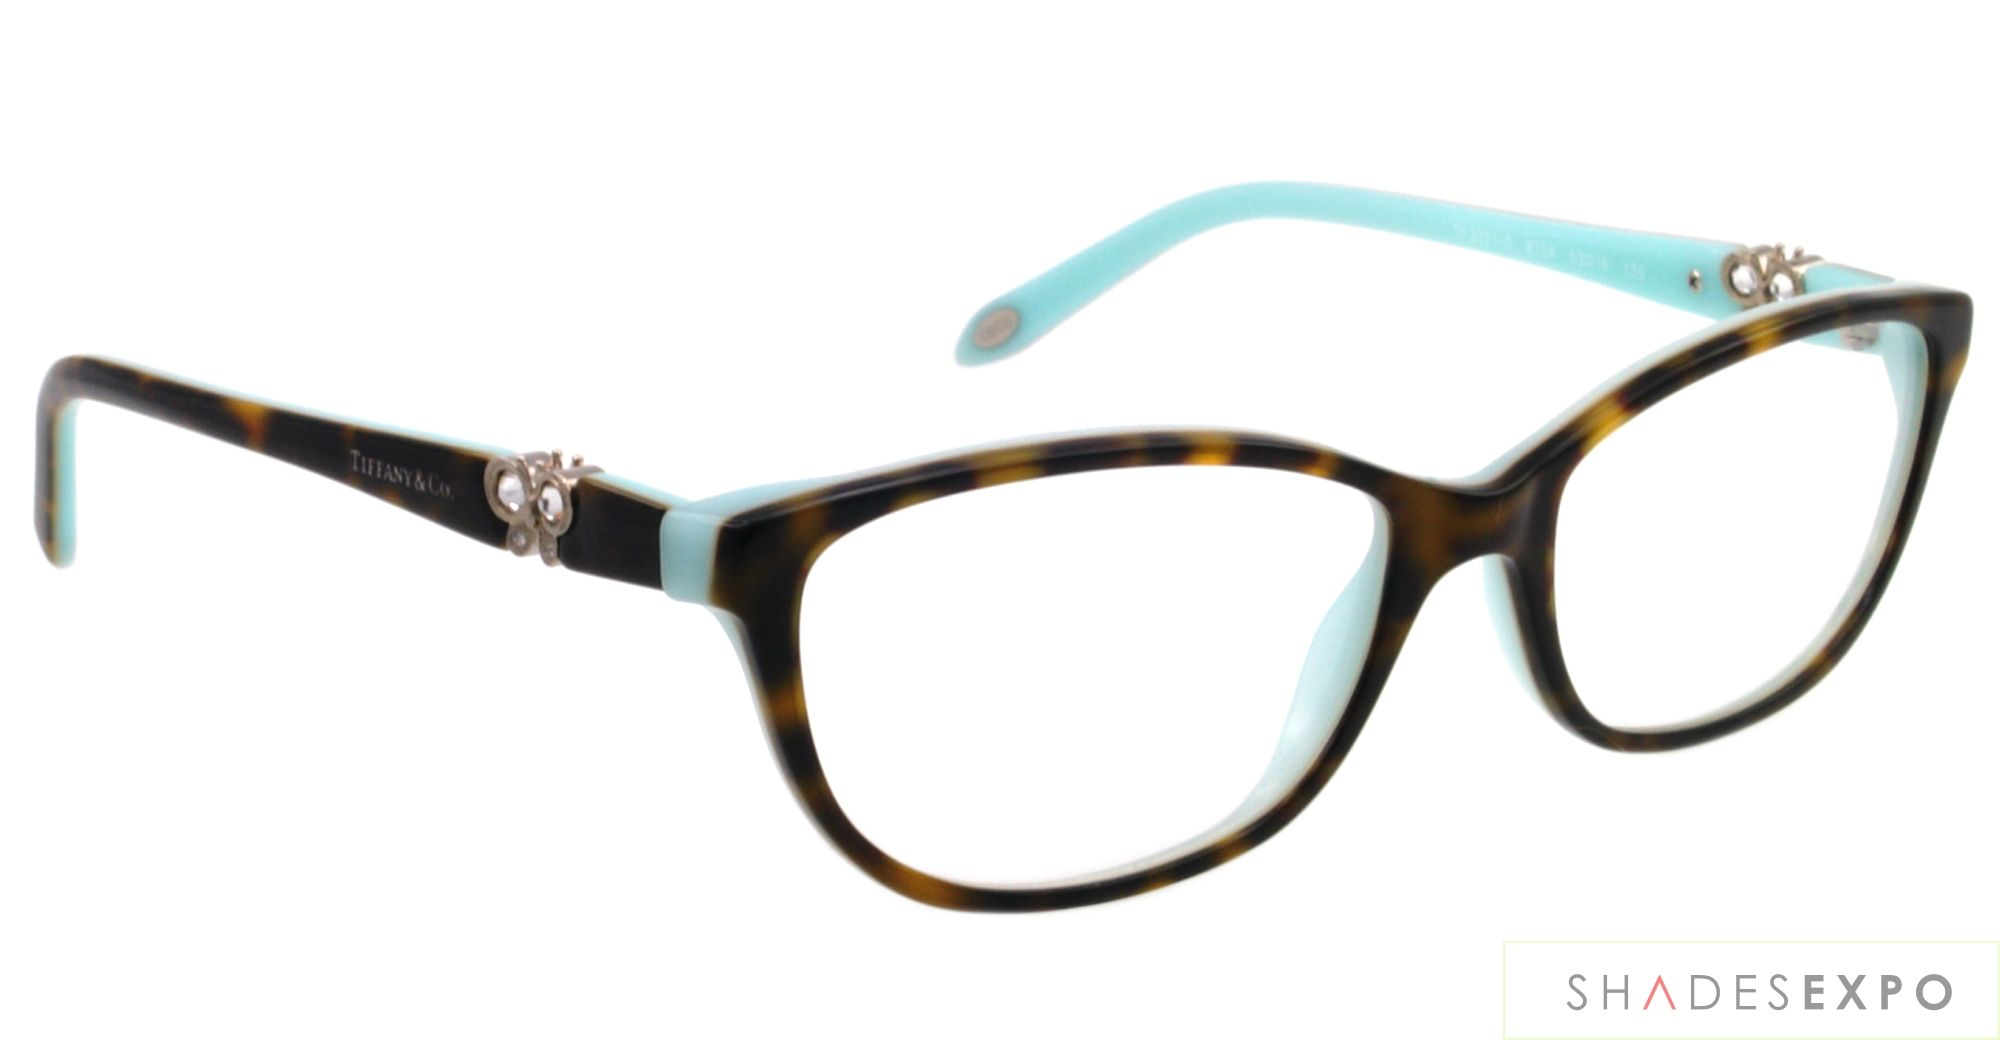 94b51f03bcf7 NEW Tiffany Eyeglasses TIF 2051B HAVANA 8134 TIF2051 53MM AUTHENTIC ...